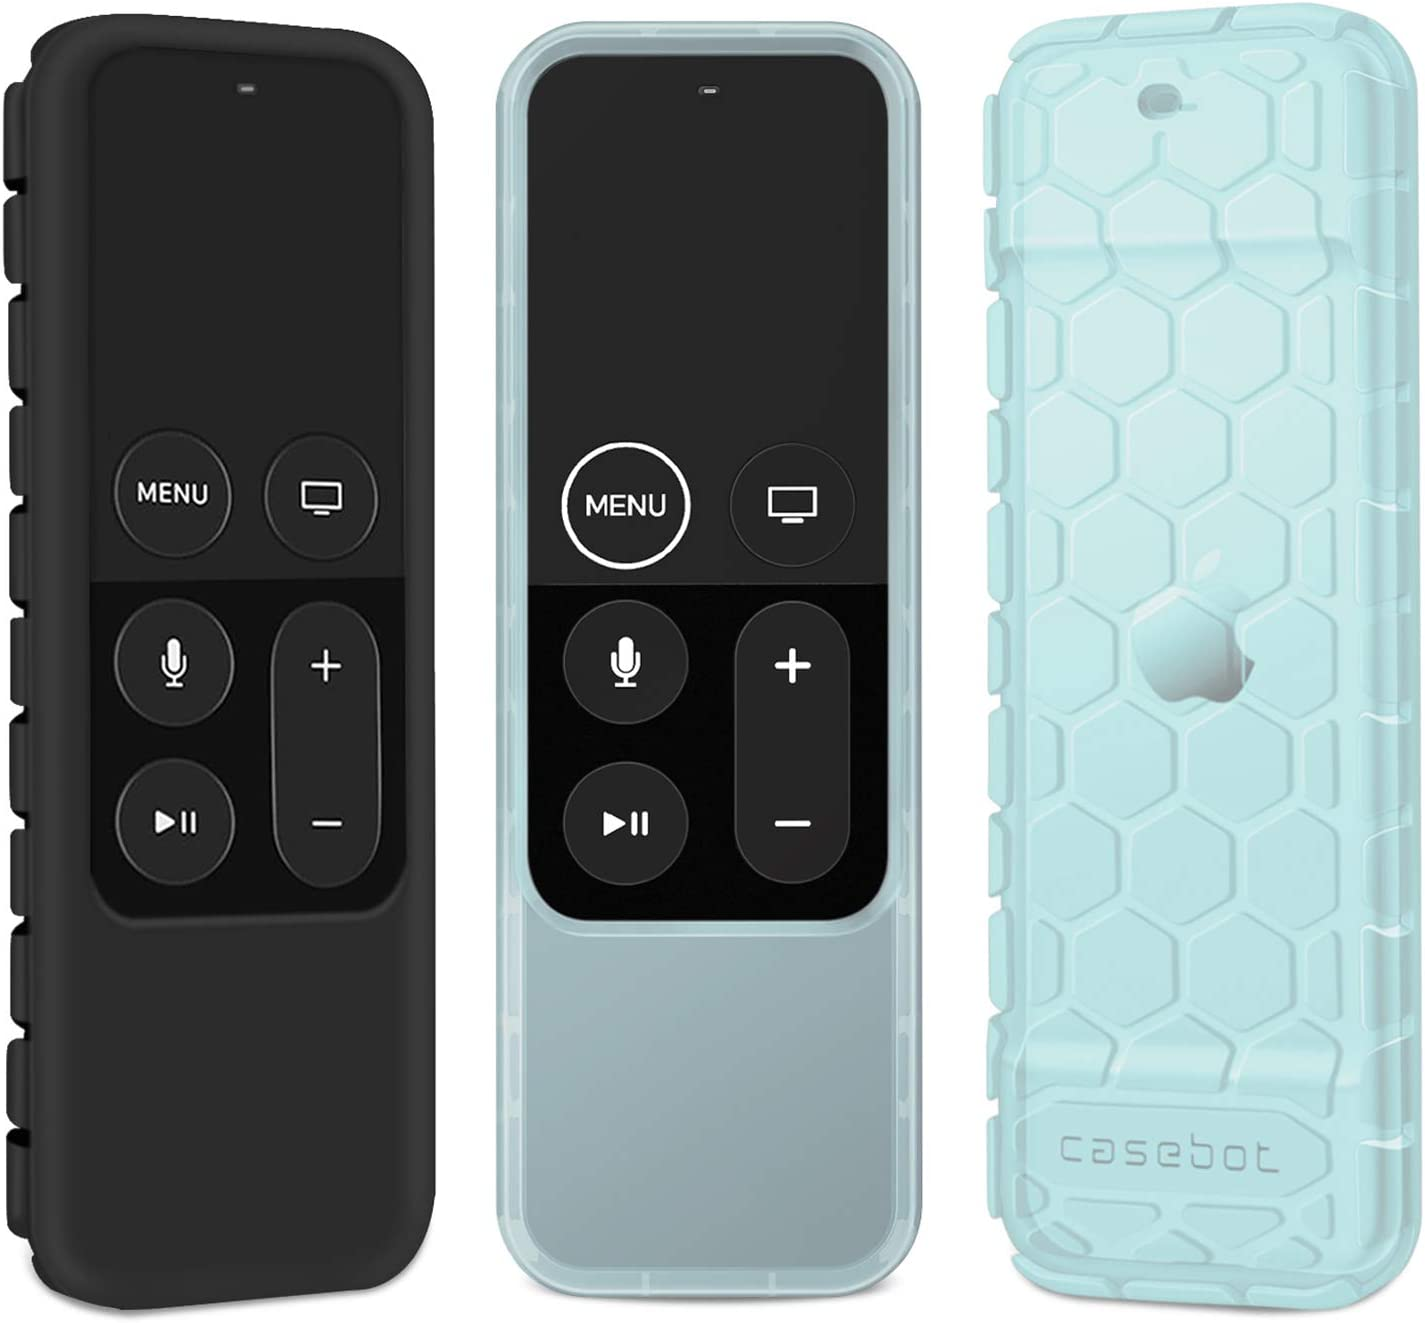 [2 Pack] Fintie Protective Case for Apple TV 4K 5th, 4th Gen Remote - Casebot (Honey Comb Series) Anti Slip Shockproof Silicone Cover for Apple TV Siri Remote Controller (Black + Blue Glow)